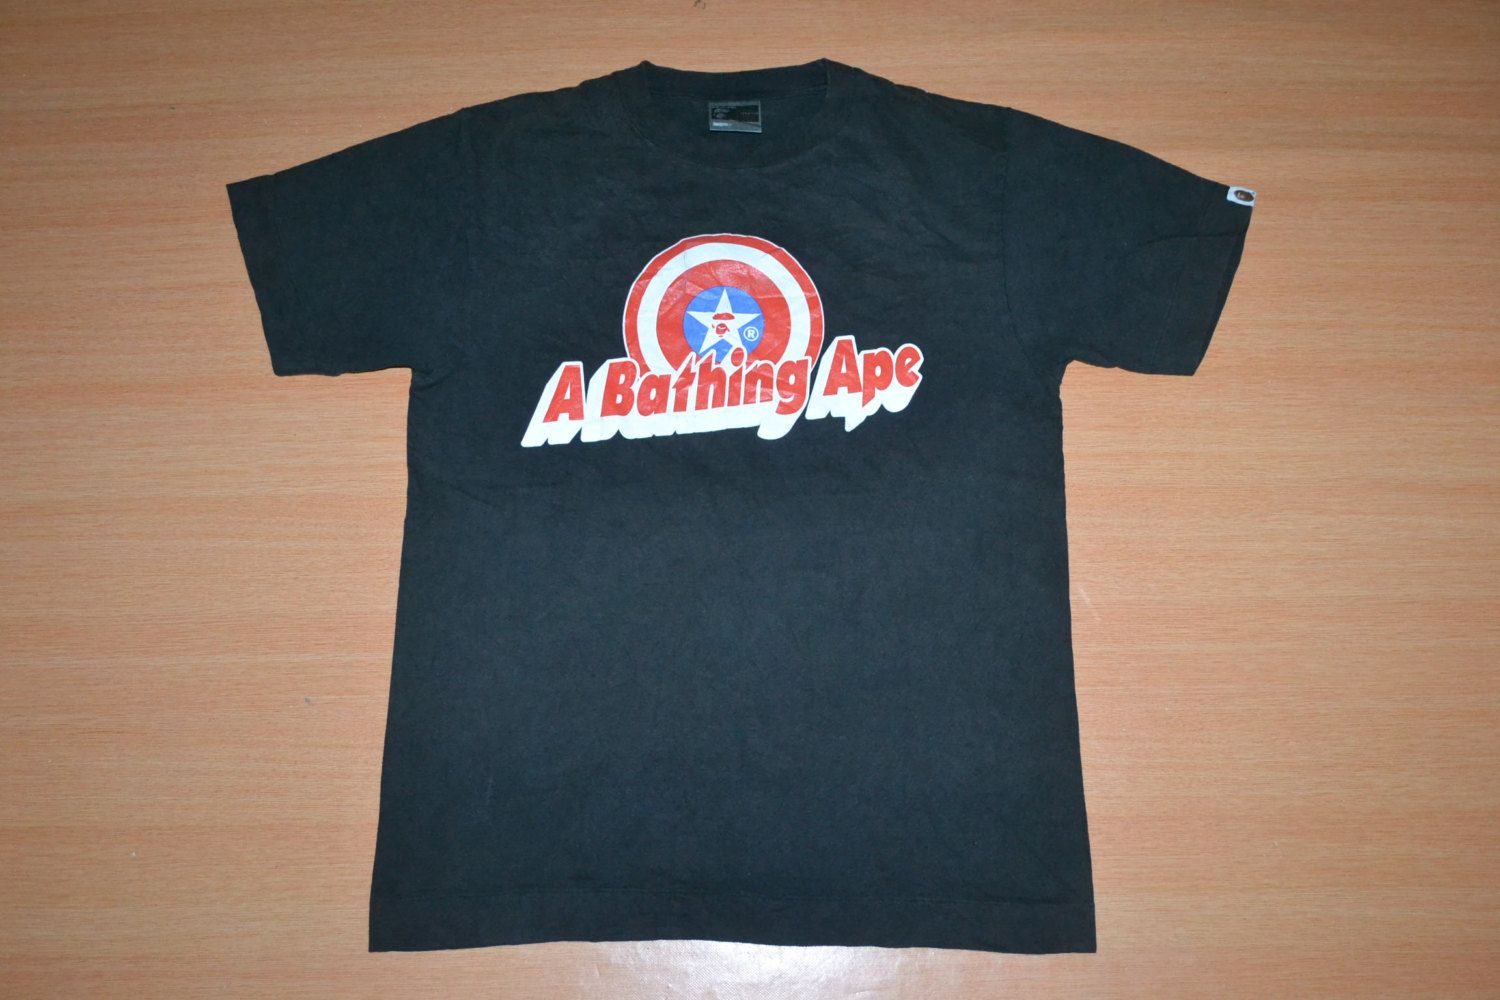 a04197d9 Vintage 90s BATHING Ape Bape x Captain America Camo Made in Japan Black M  Size T-shirt t shirt by OldSchoolZone on Etsy